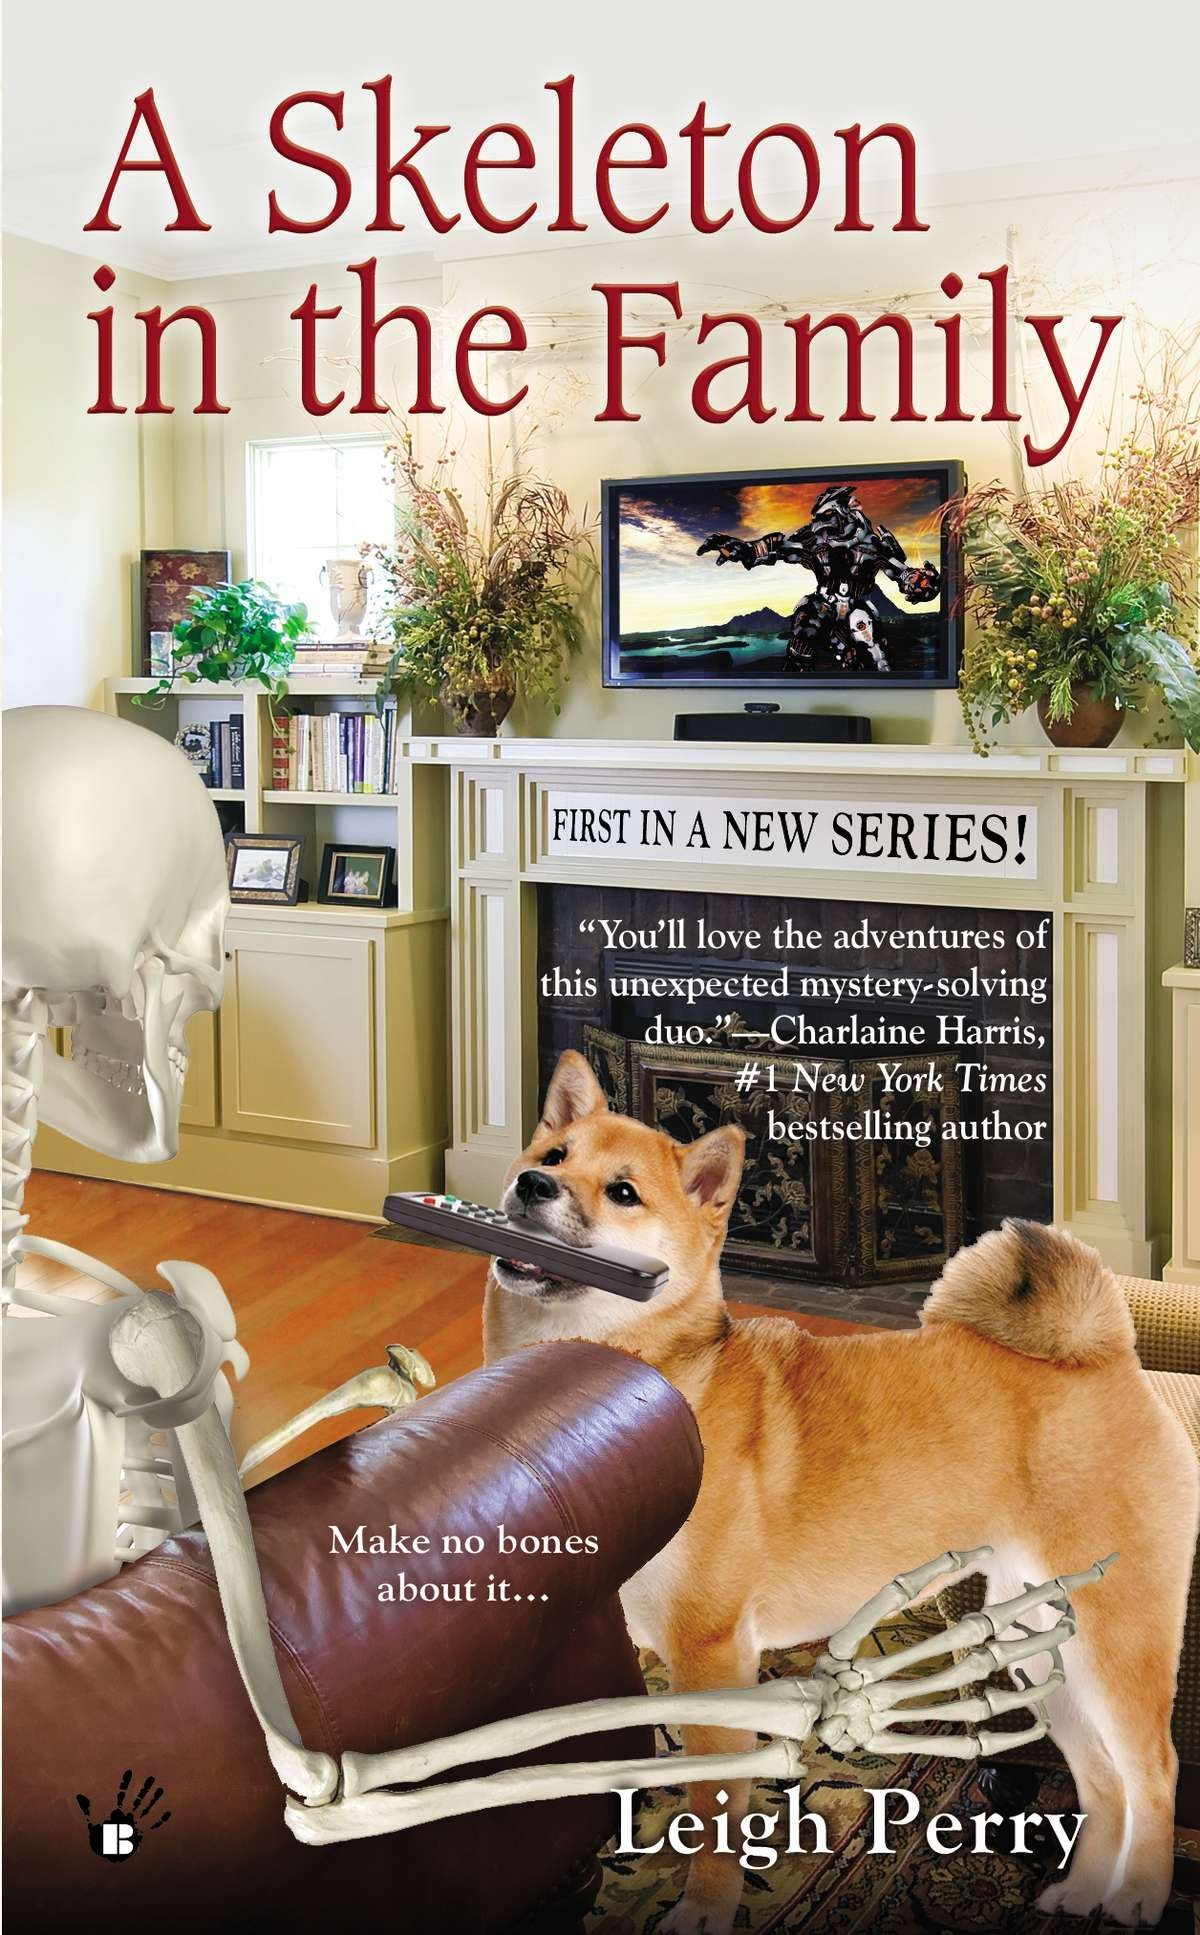 A Skeleton in the Family Review